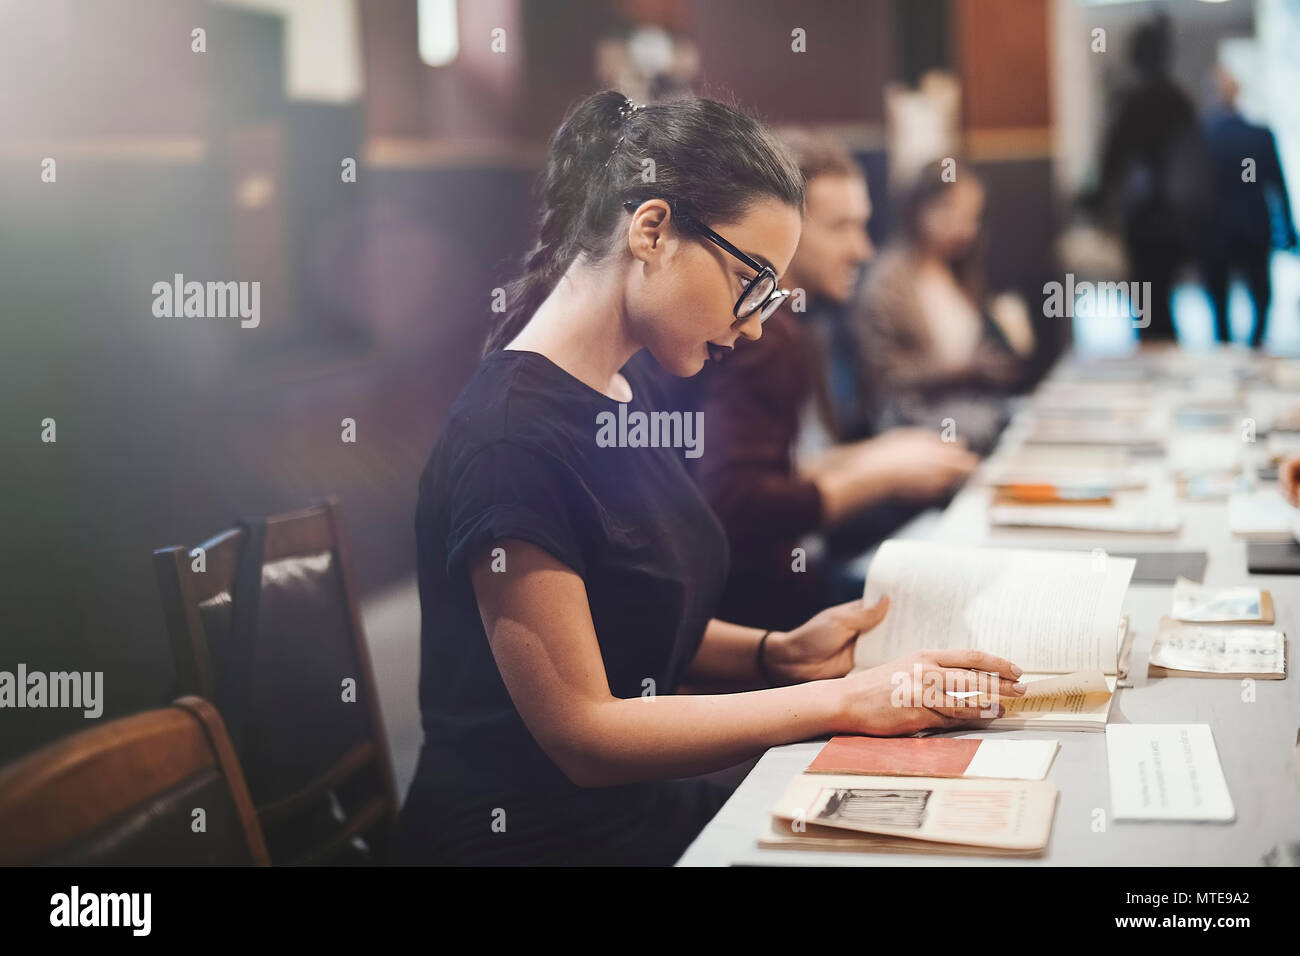 Young brunette girl with glasses and black lipstick reading book - Stock Image